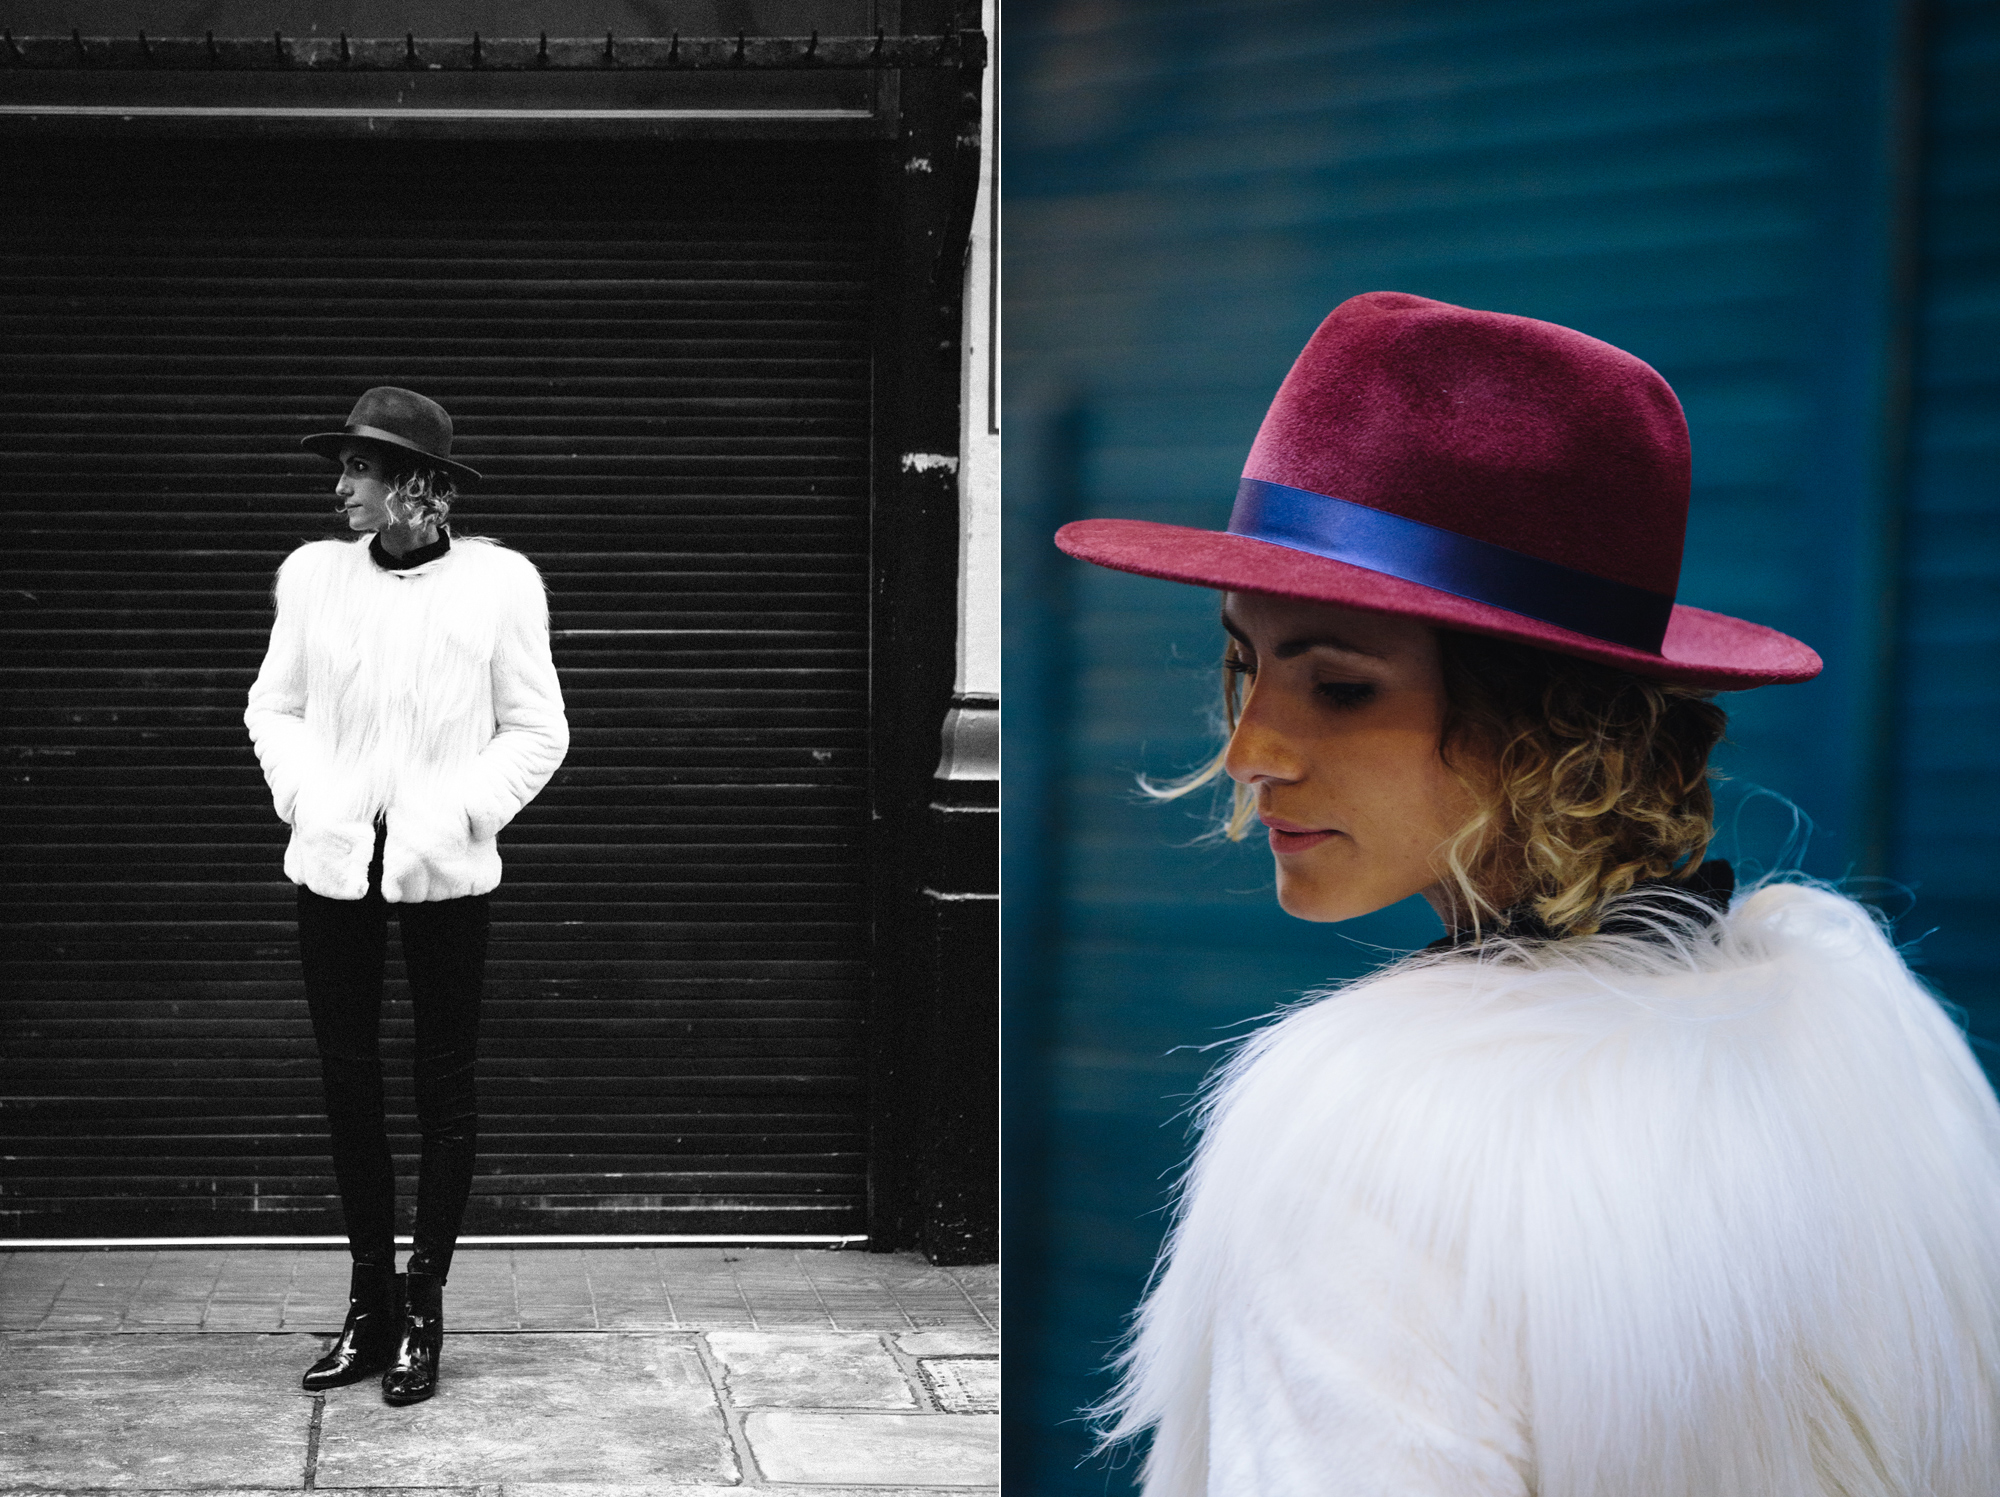 Hermione McCosh Photography - Kate Braithwaite Millinery - fashion and lifestyle photographer, London